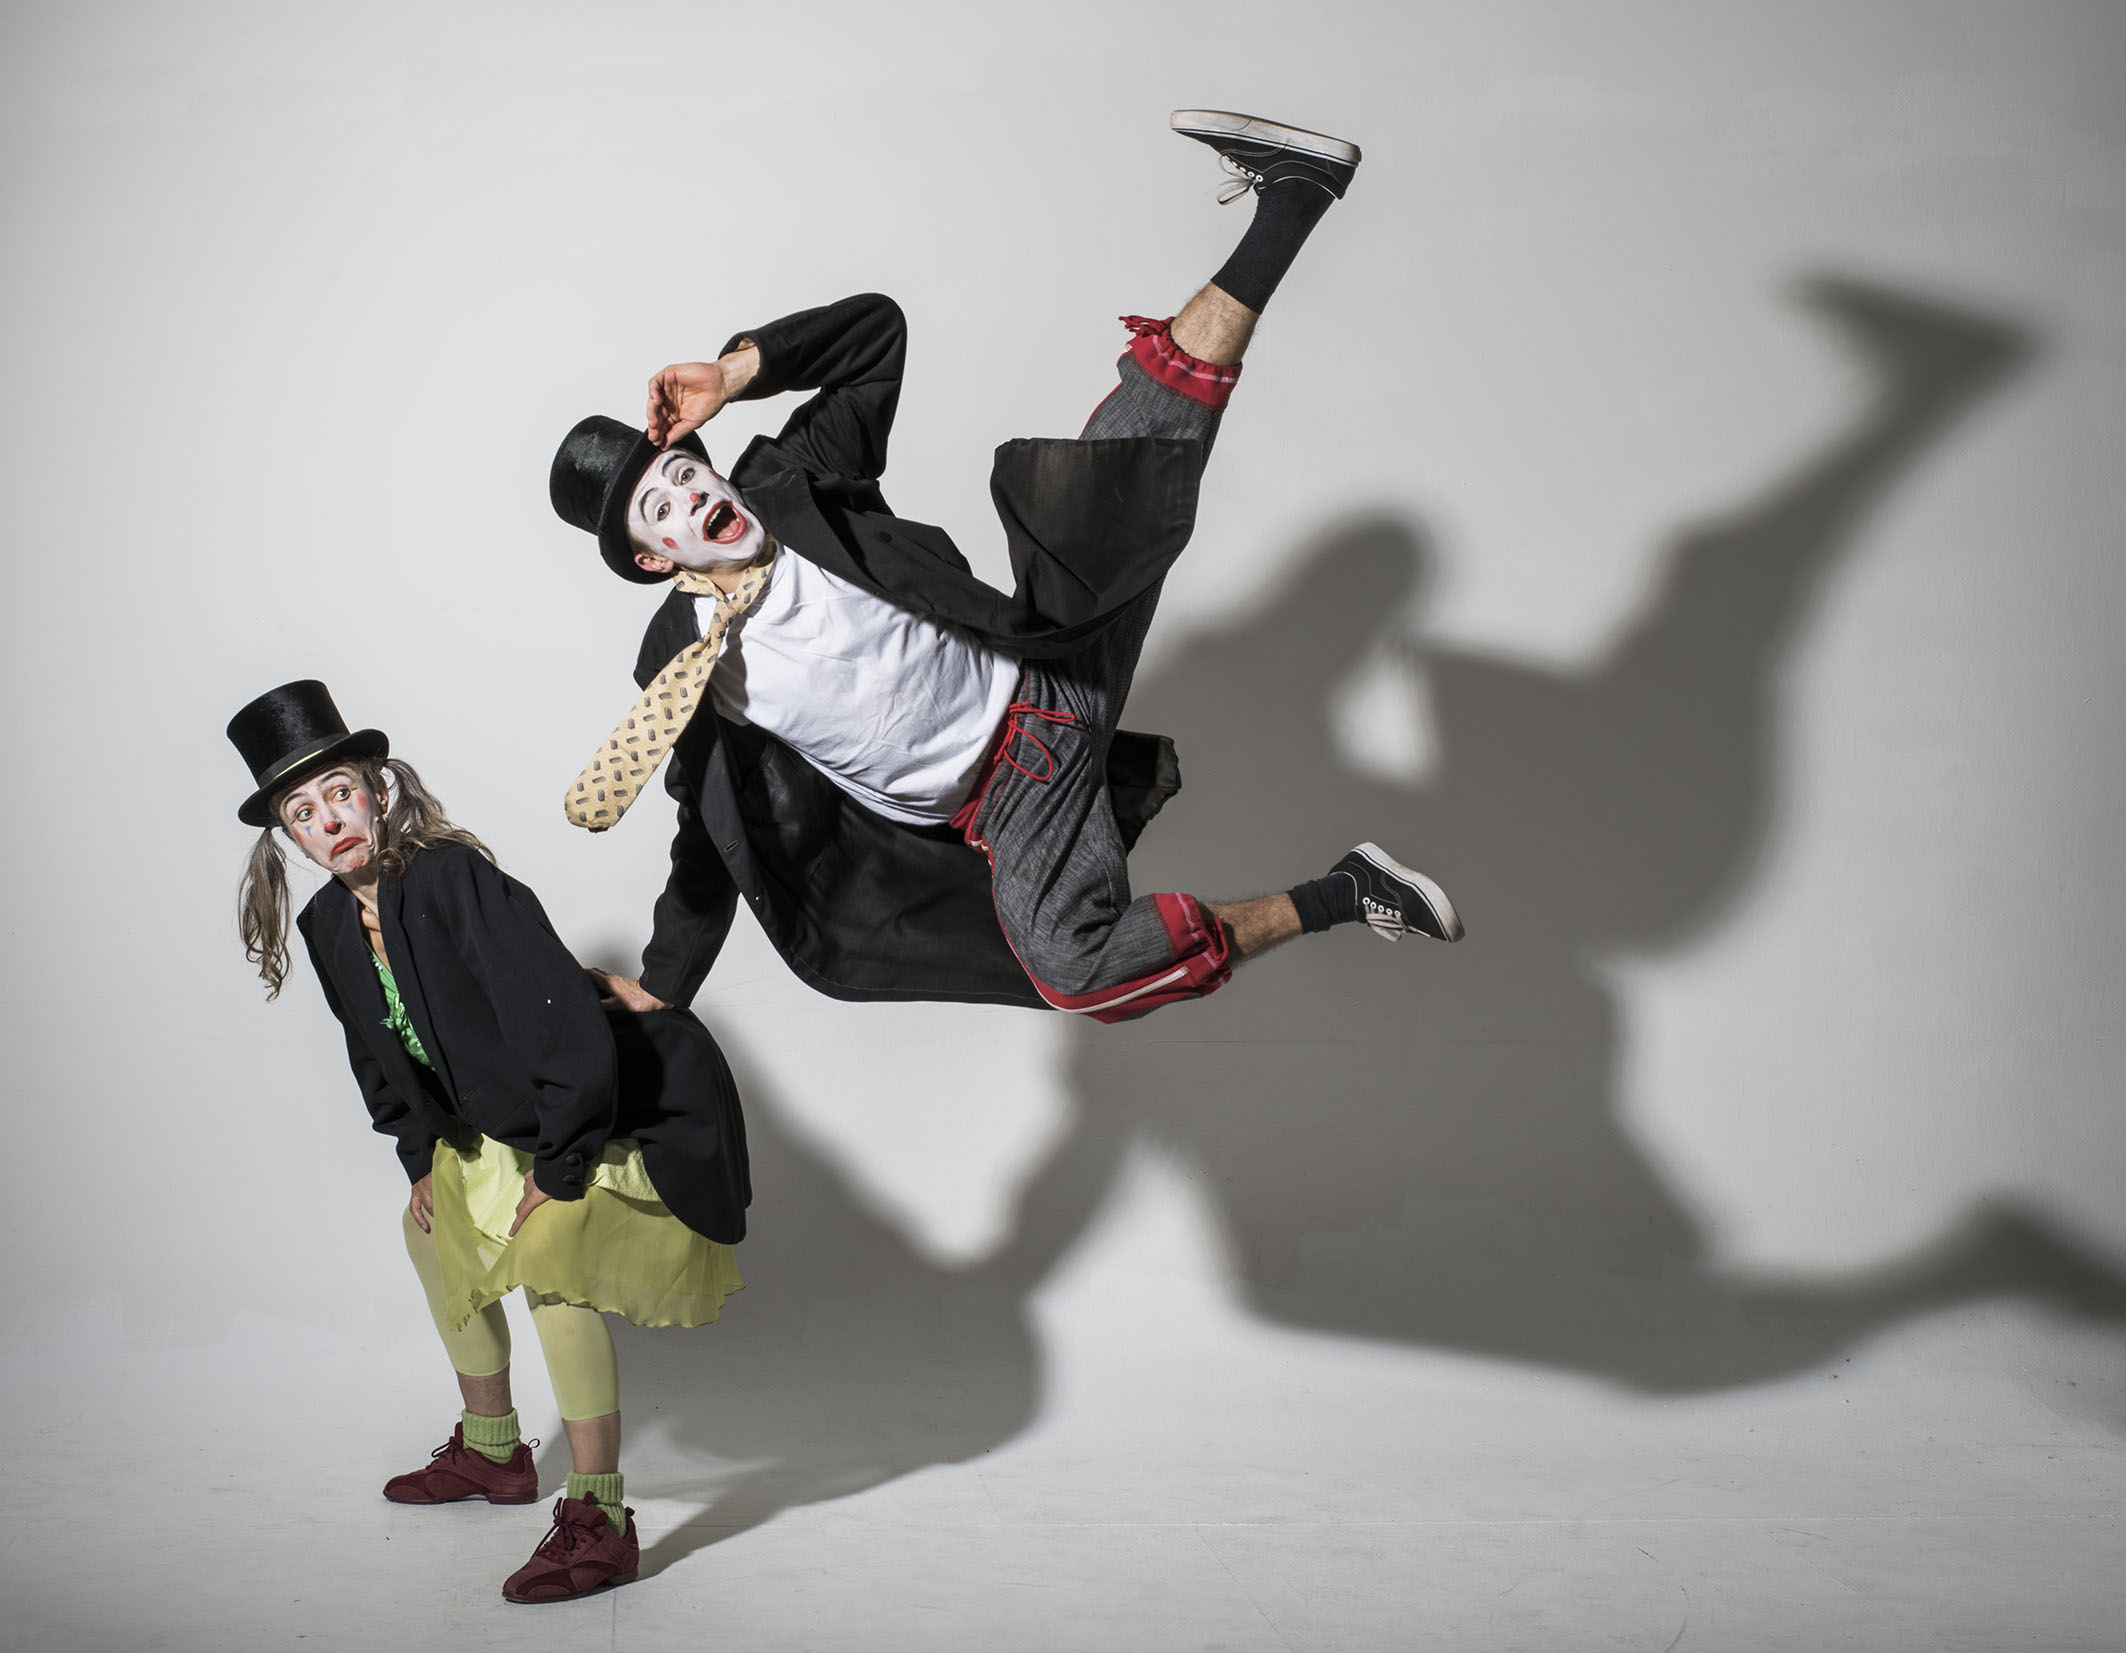 Entertainment, Clown, Theater, Tanz, Comedy, Musical, Akrobatik, Artistik, Breakdance, Stuttgart